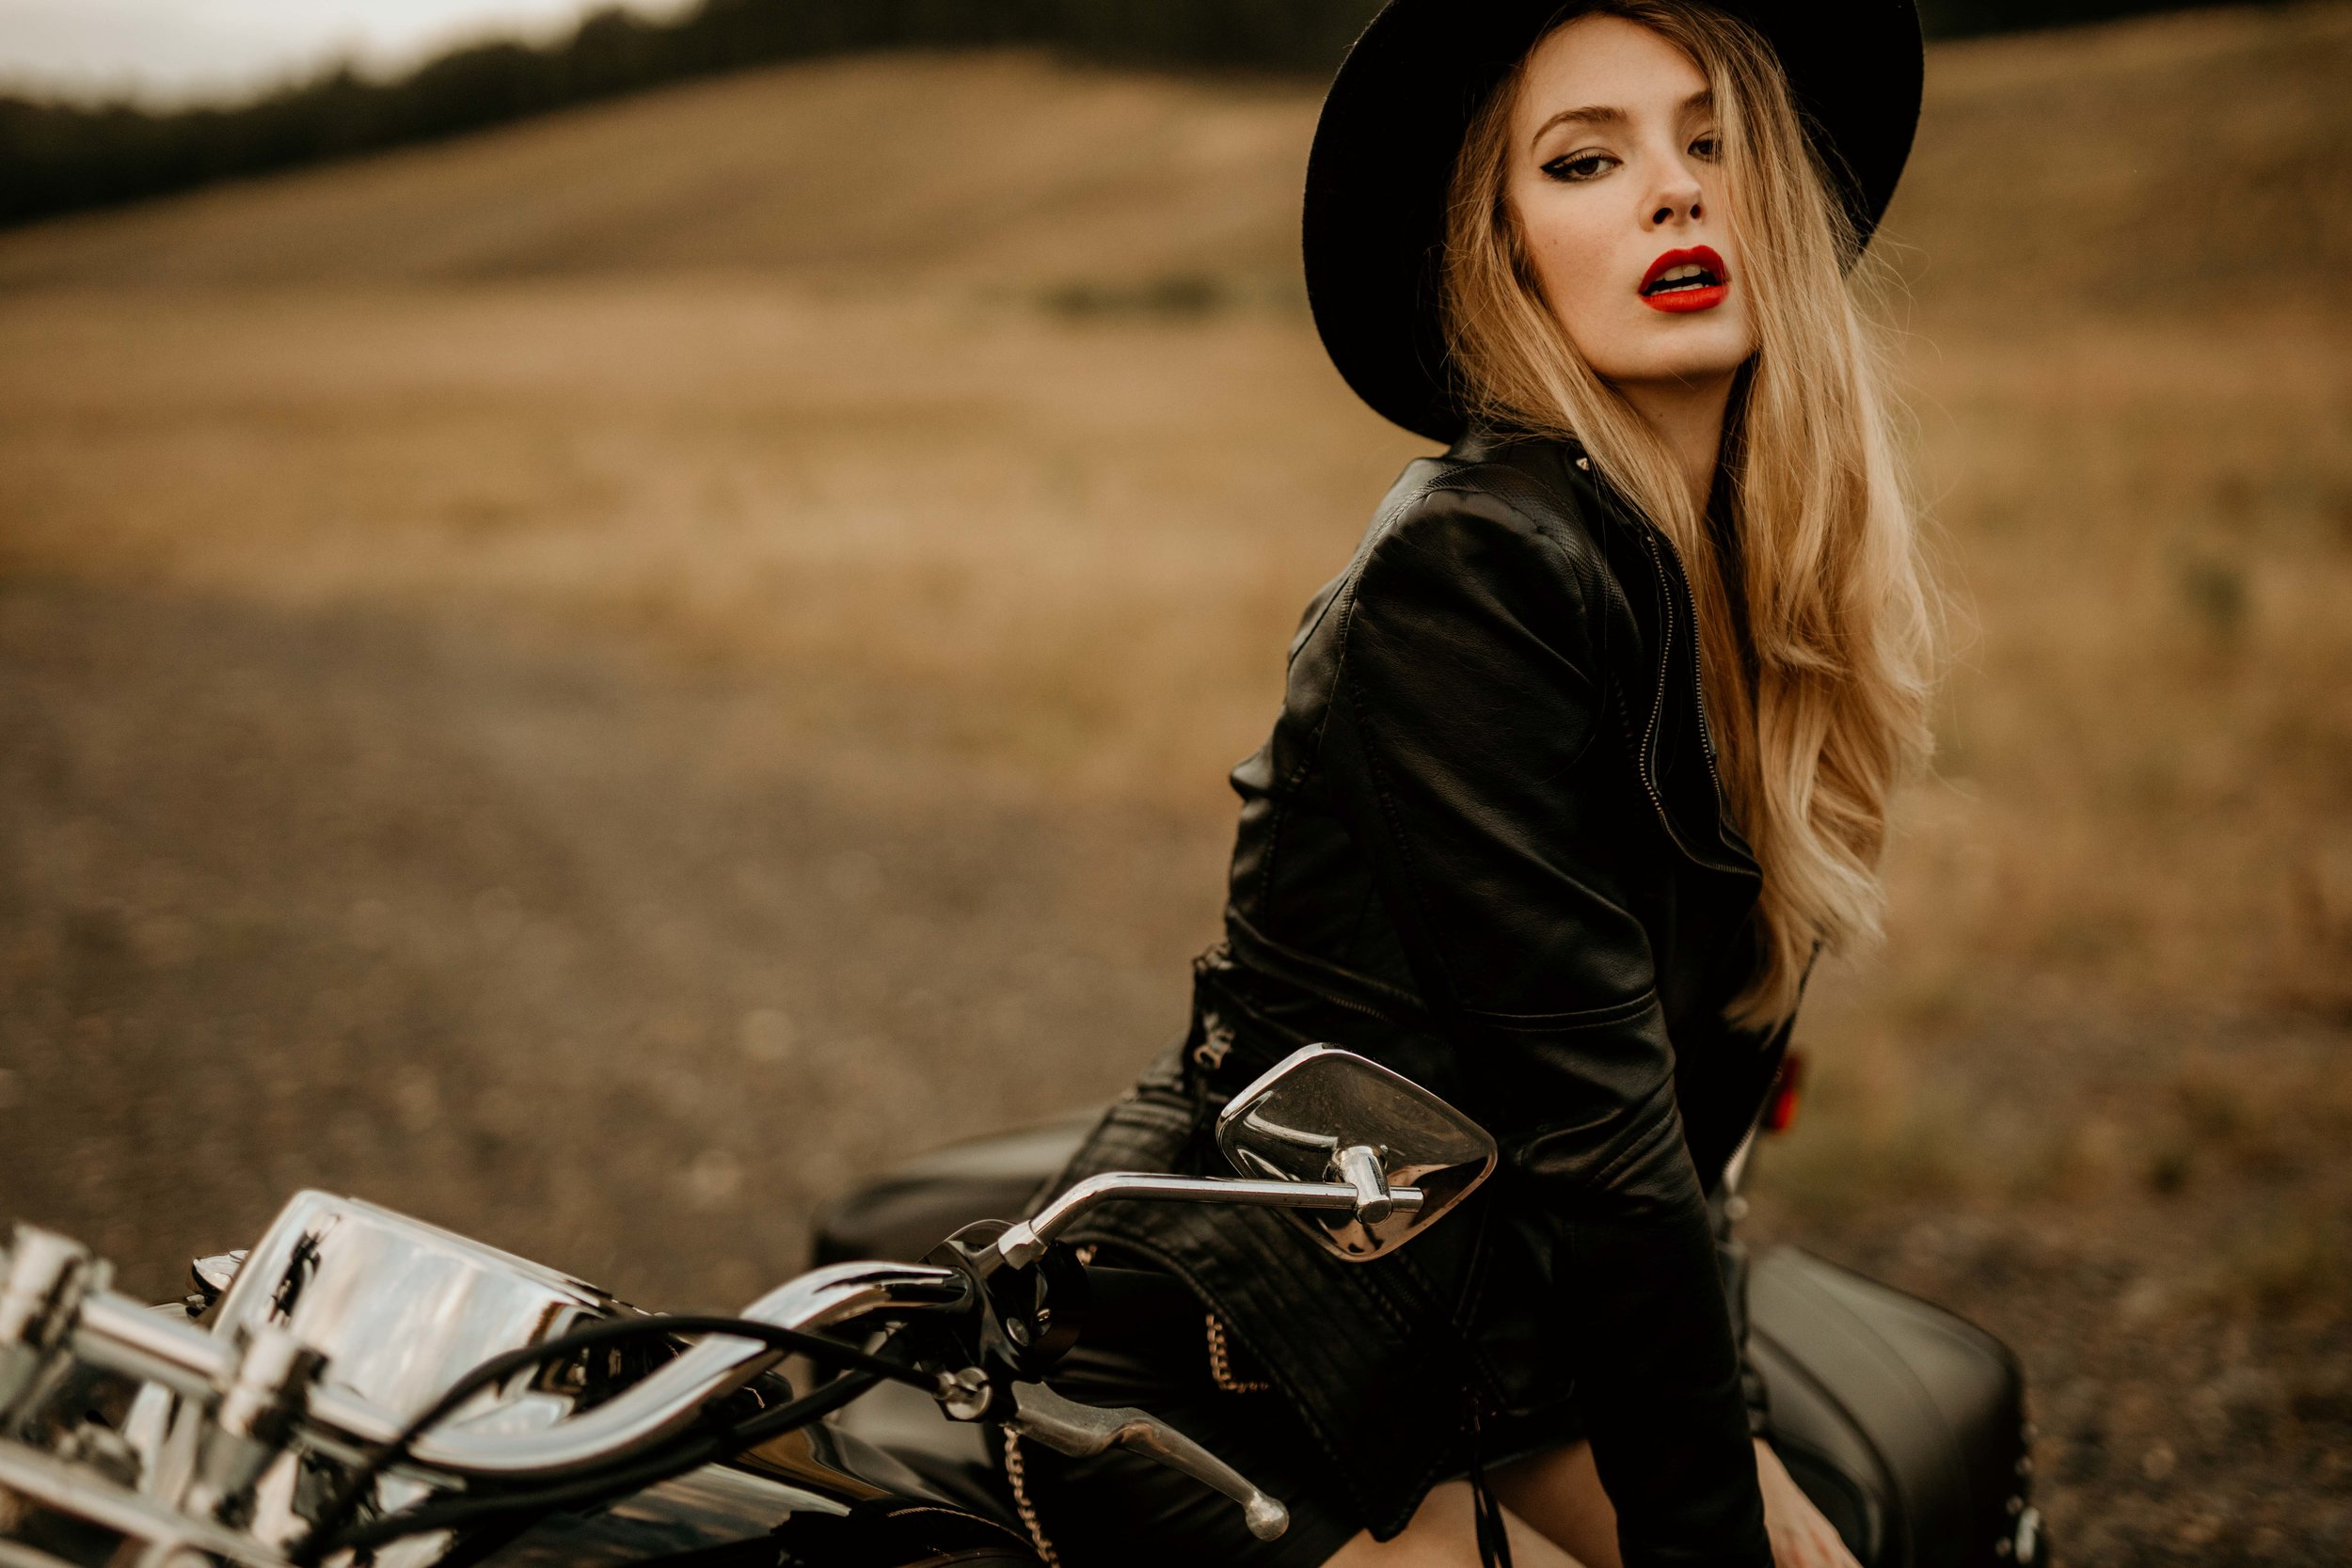 abbey motorcycle little rock arkansas fashion editorial